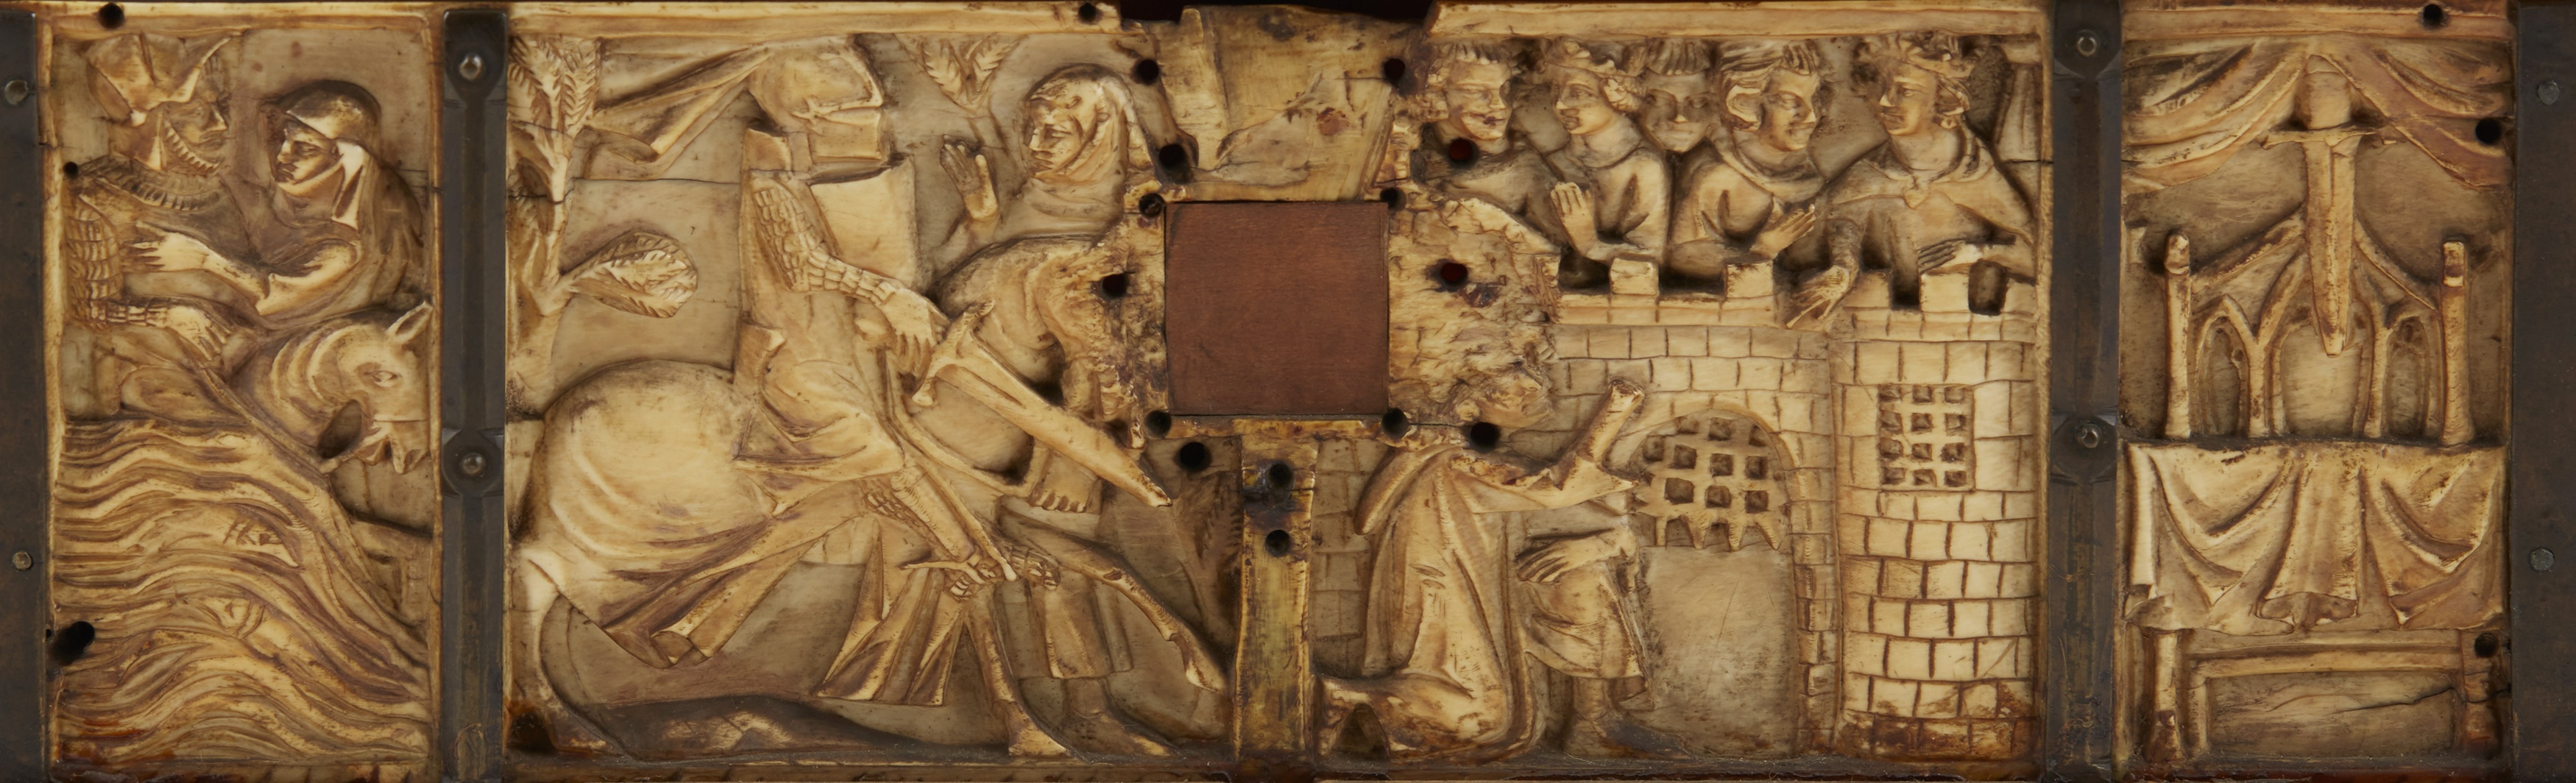 Y ◆ RARE AND IMPORTANT FRENCH GOTHIC IVORY COMPOSITE CASKET CIRCA 1330 - Image 3 of 8